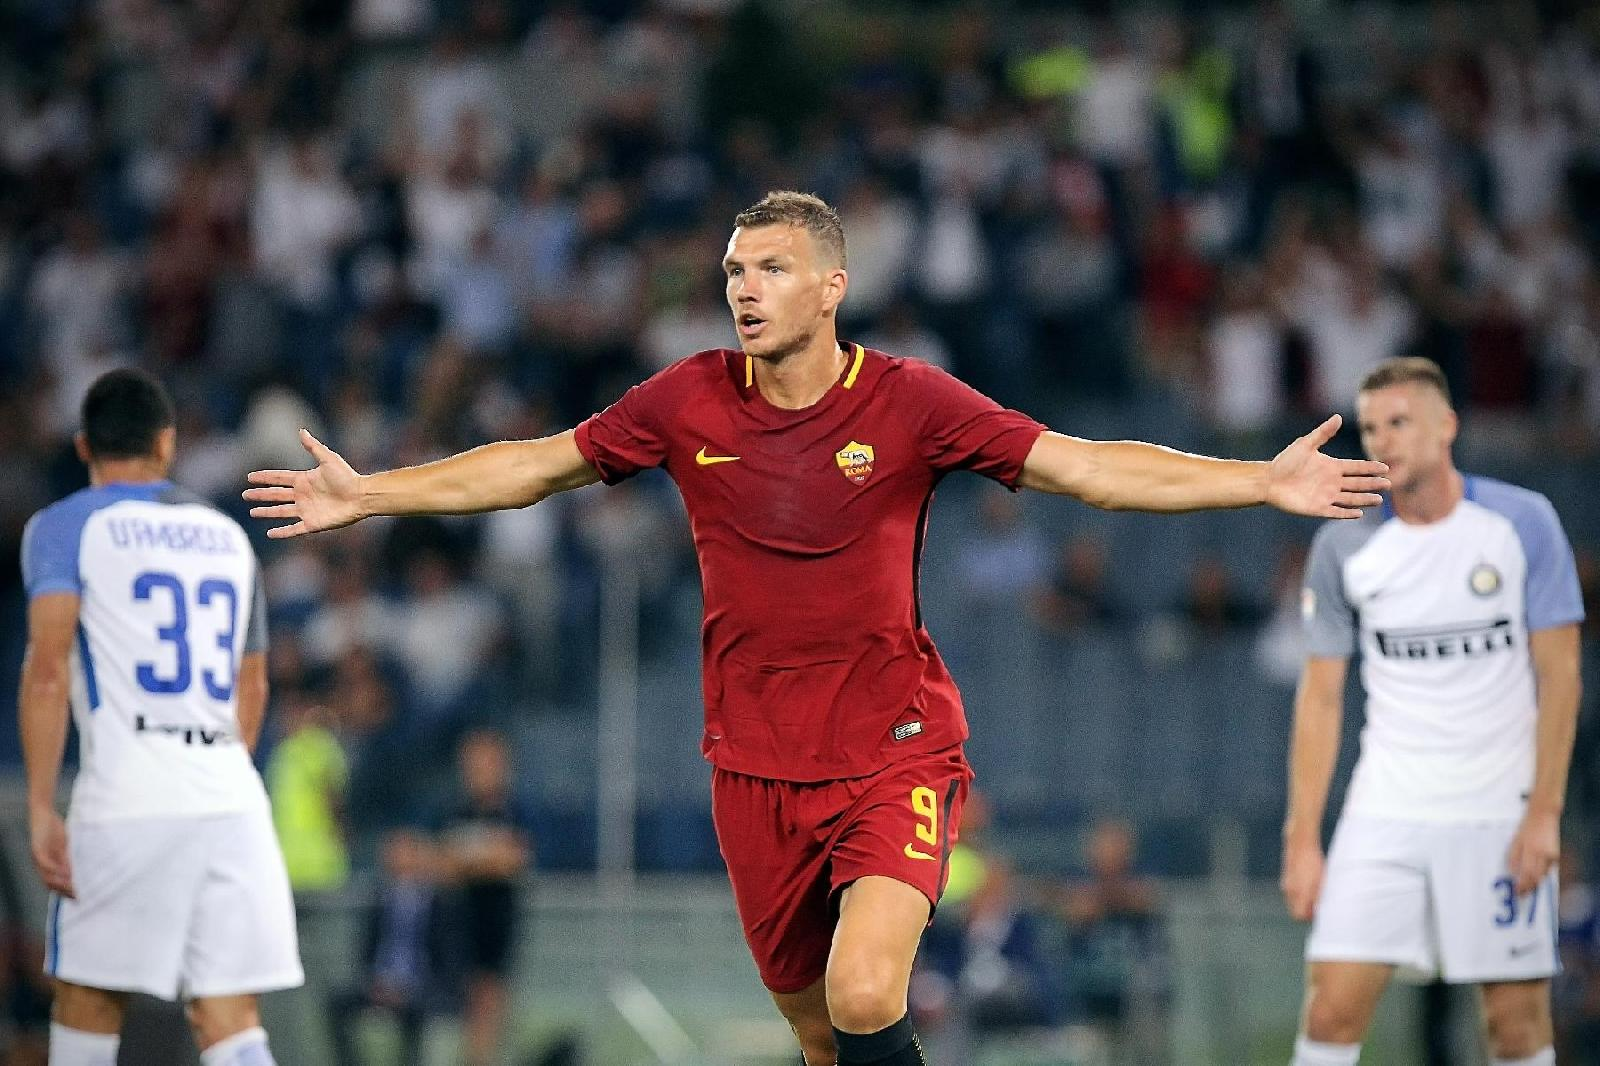 Edin Dzeko scrive sul The Players Tribune: